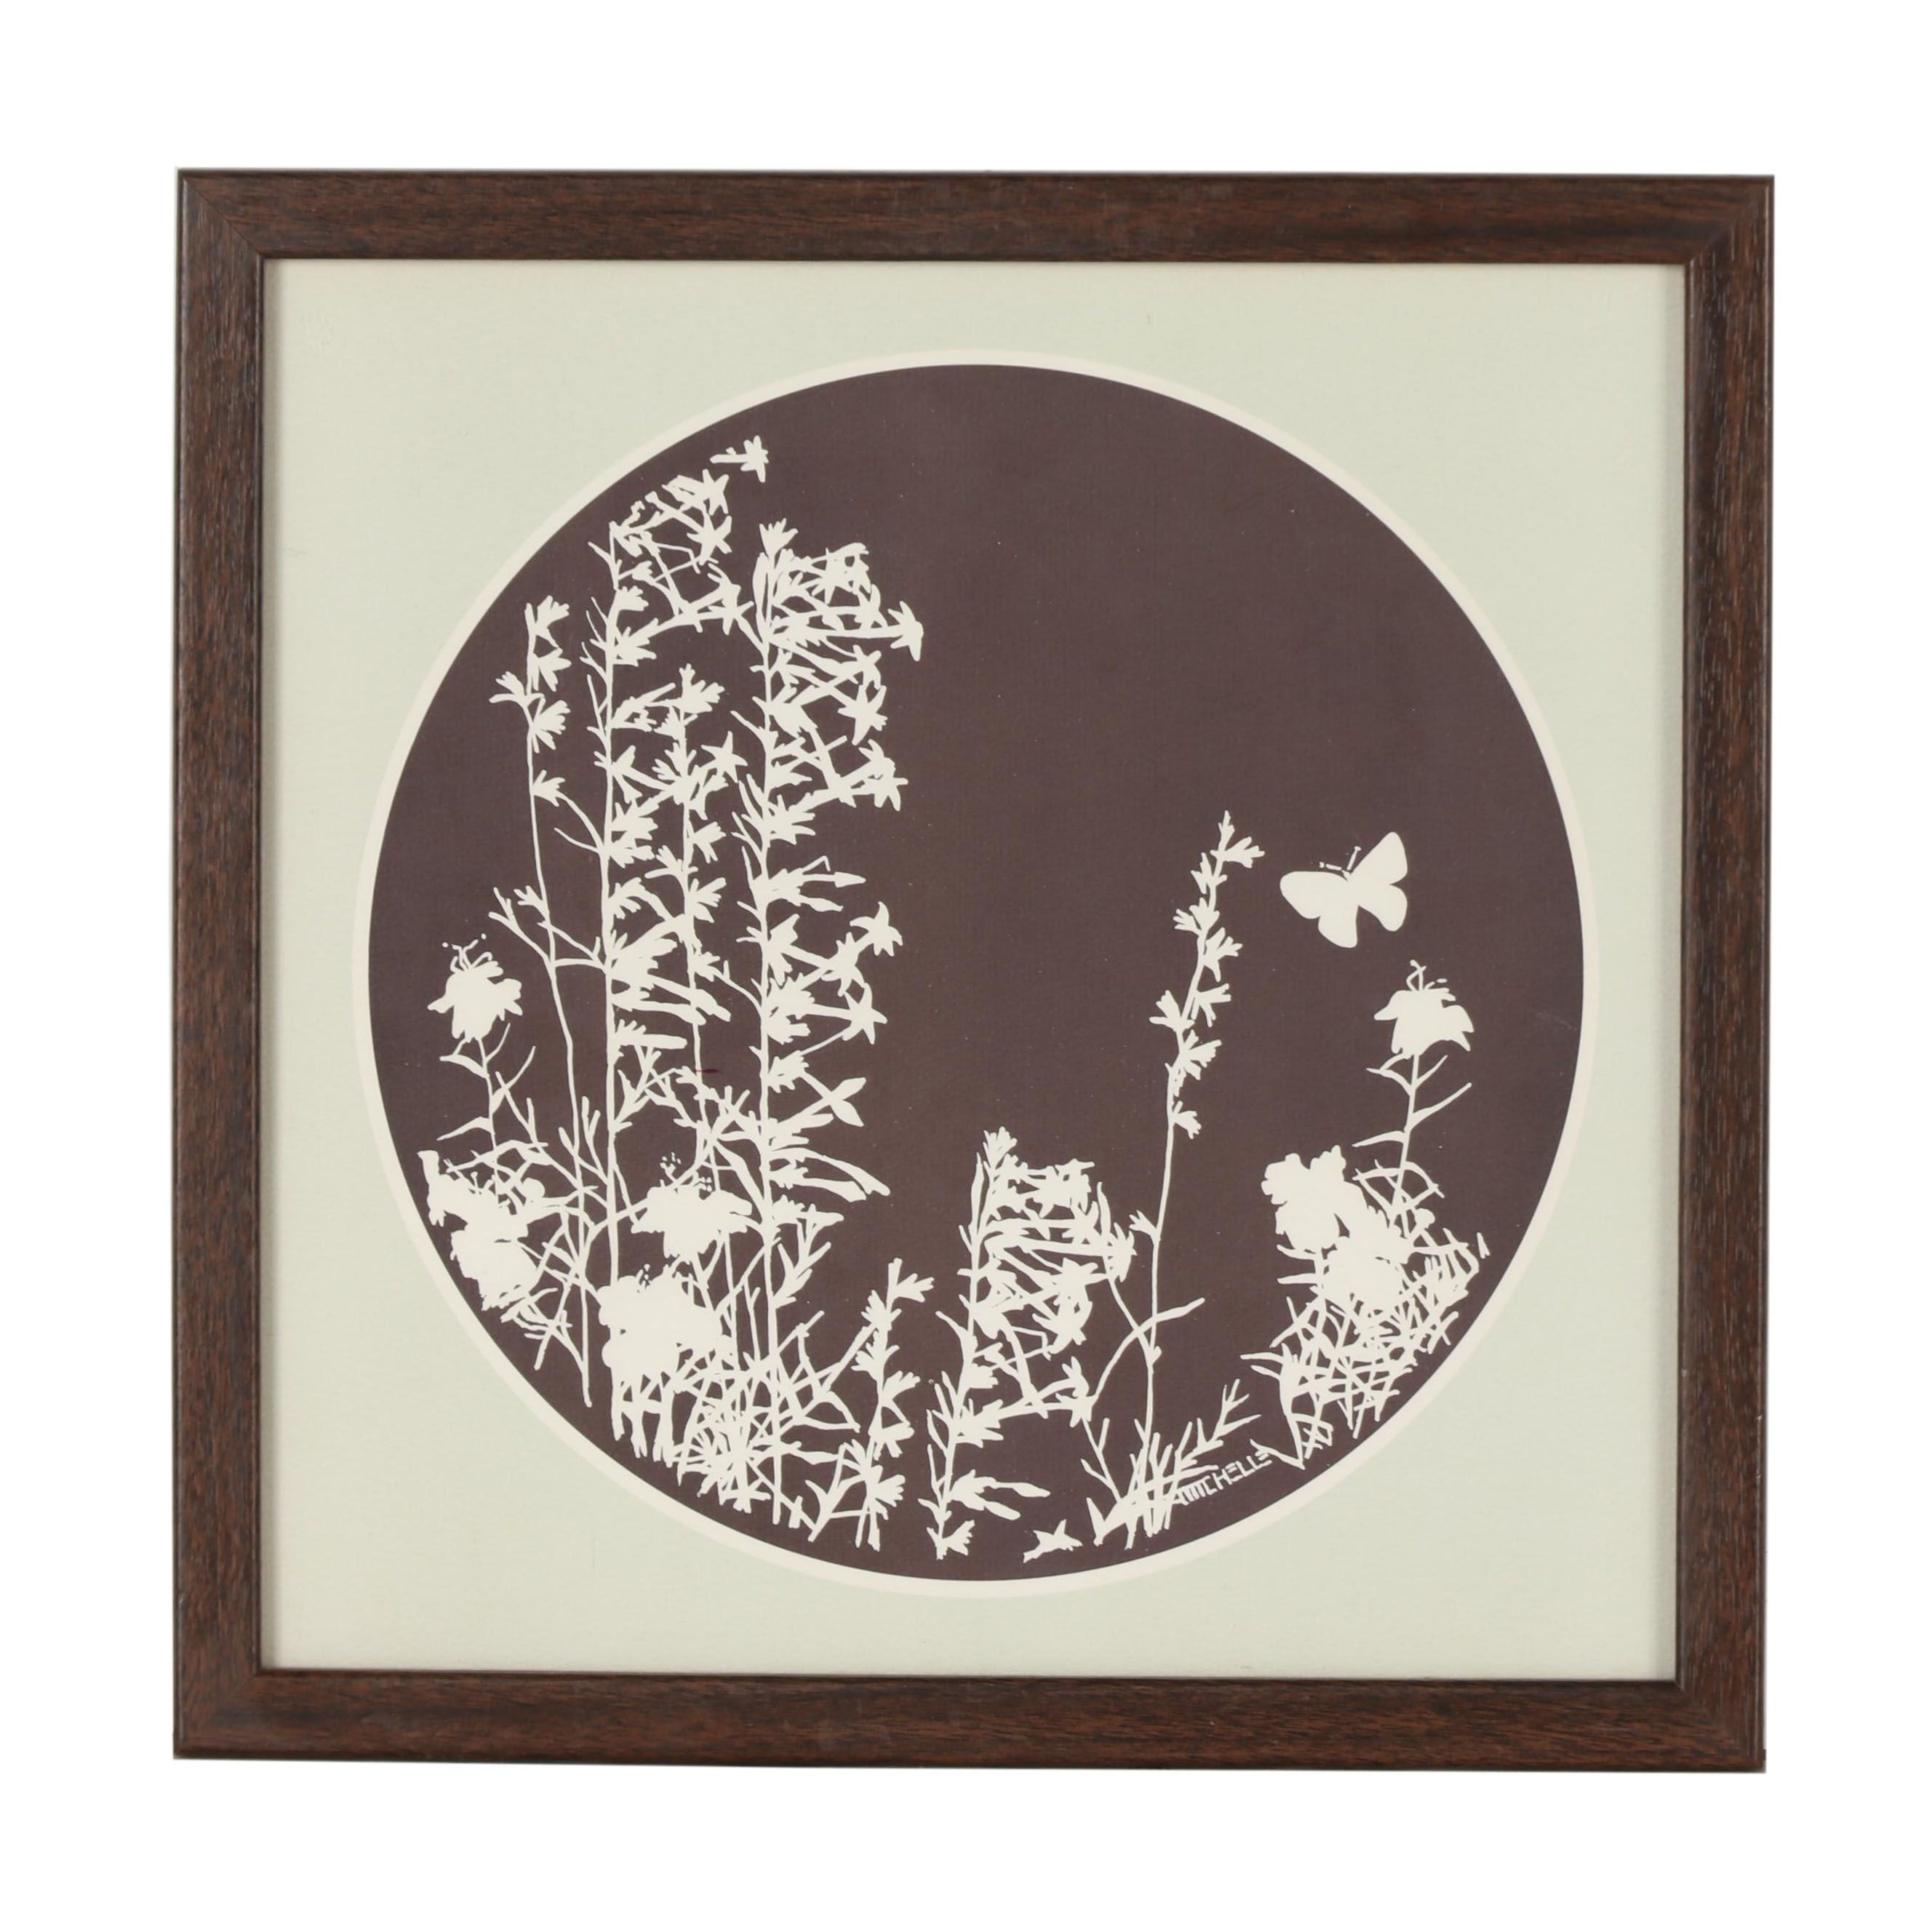 Michelle 1976 Abstract Lithograph of Botanical Composition